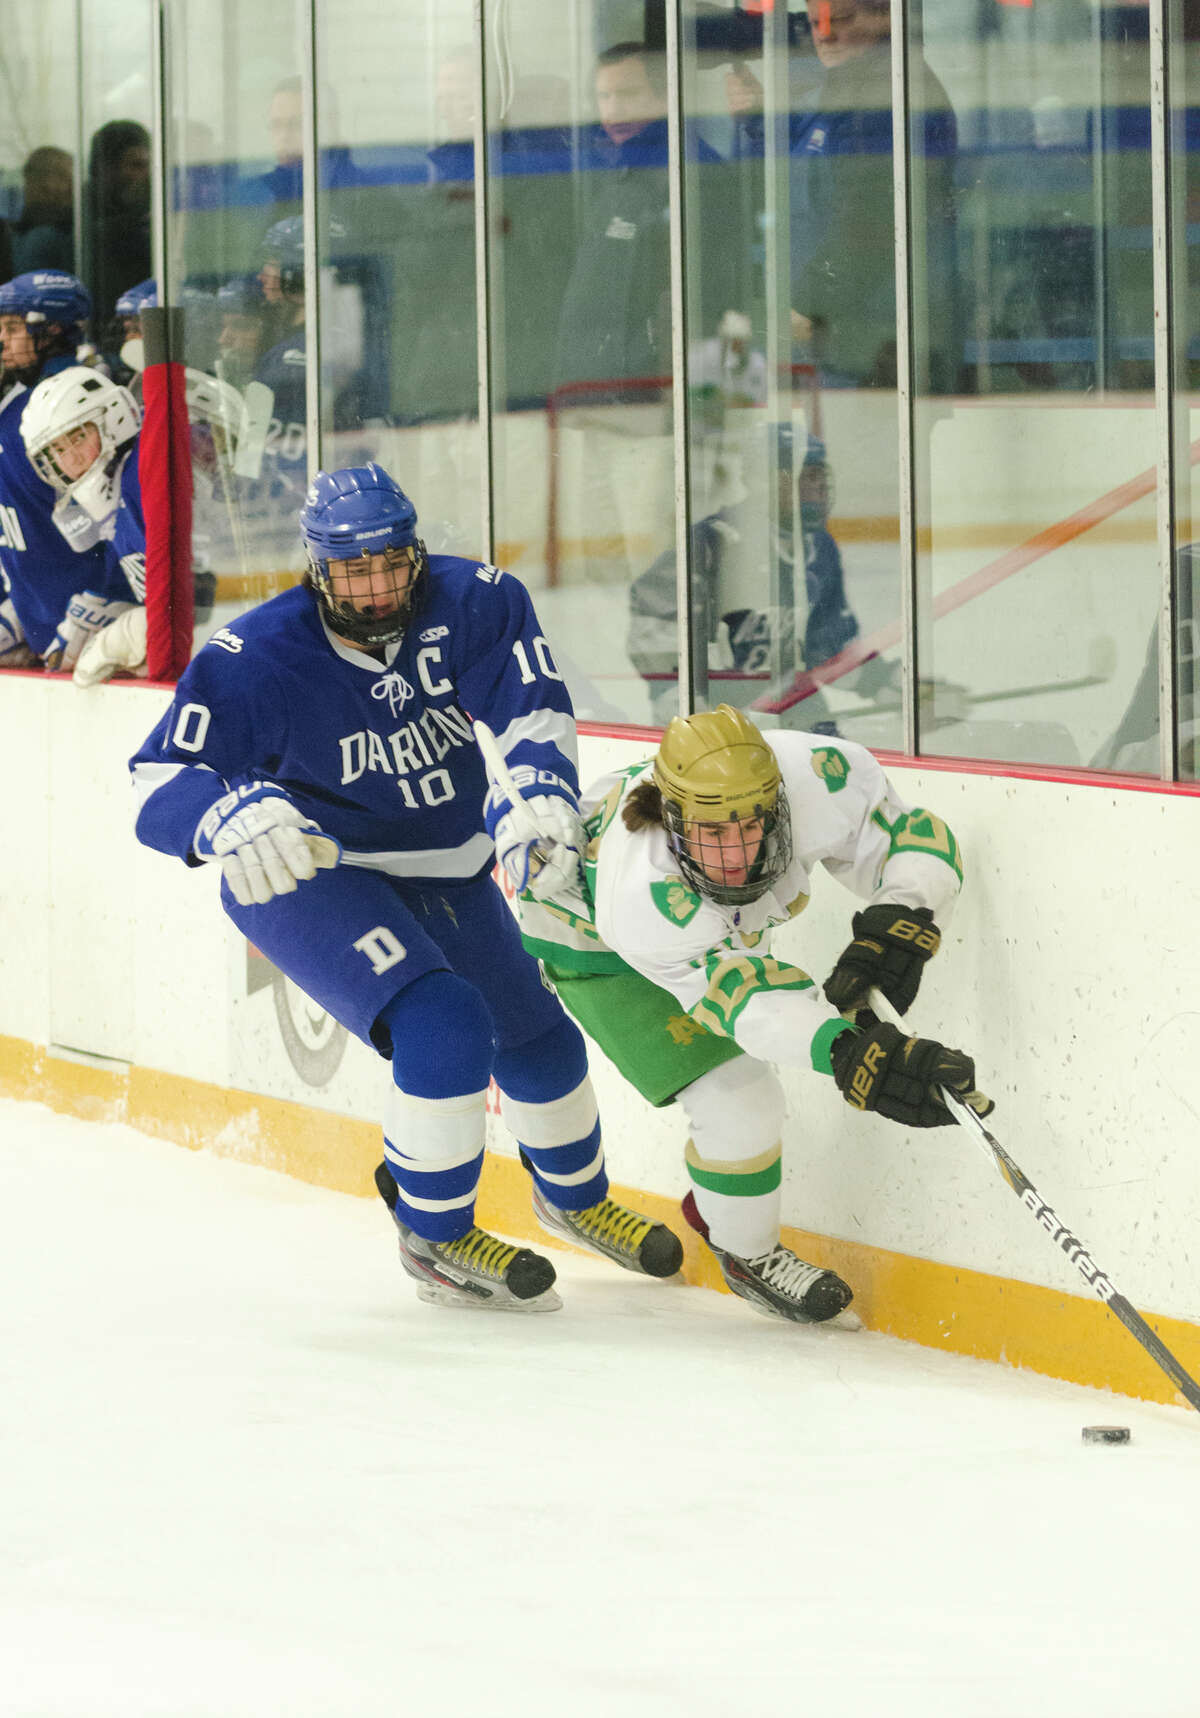 Notre Dame West Haven's Kyle Lynch (20) and Darien's Jack Massie (10) battle for control of the puck during the boys ice hockey game at Bennett Skating Rink in West Haven on Monday, Feb. 17, 2014.